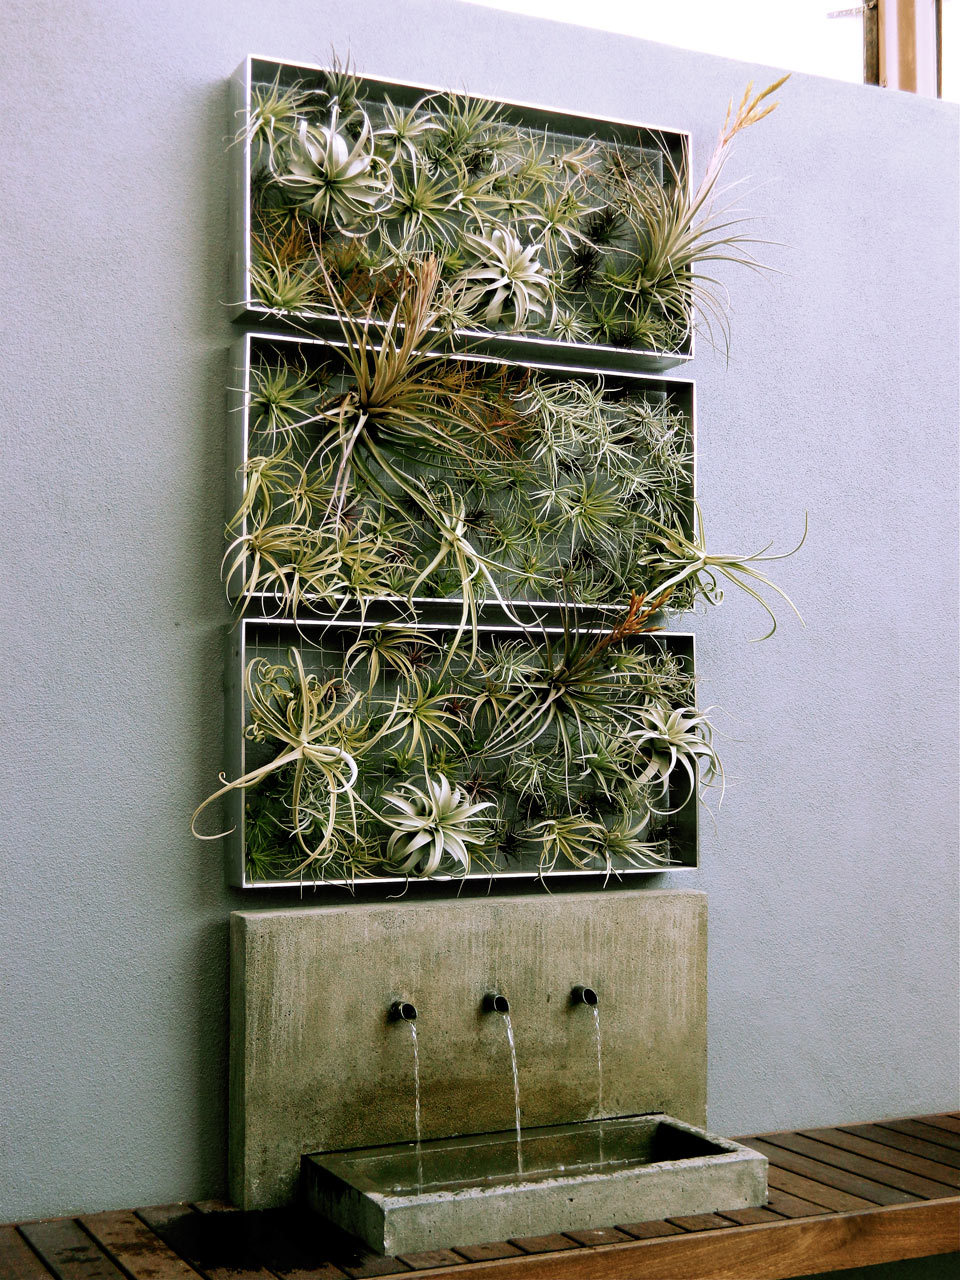 home-decor-ideas-plants-air-plant-airplantman